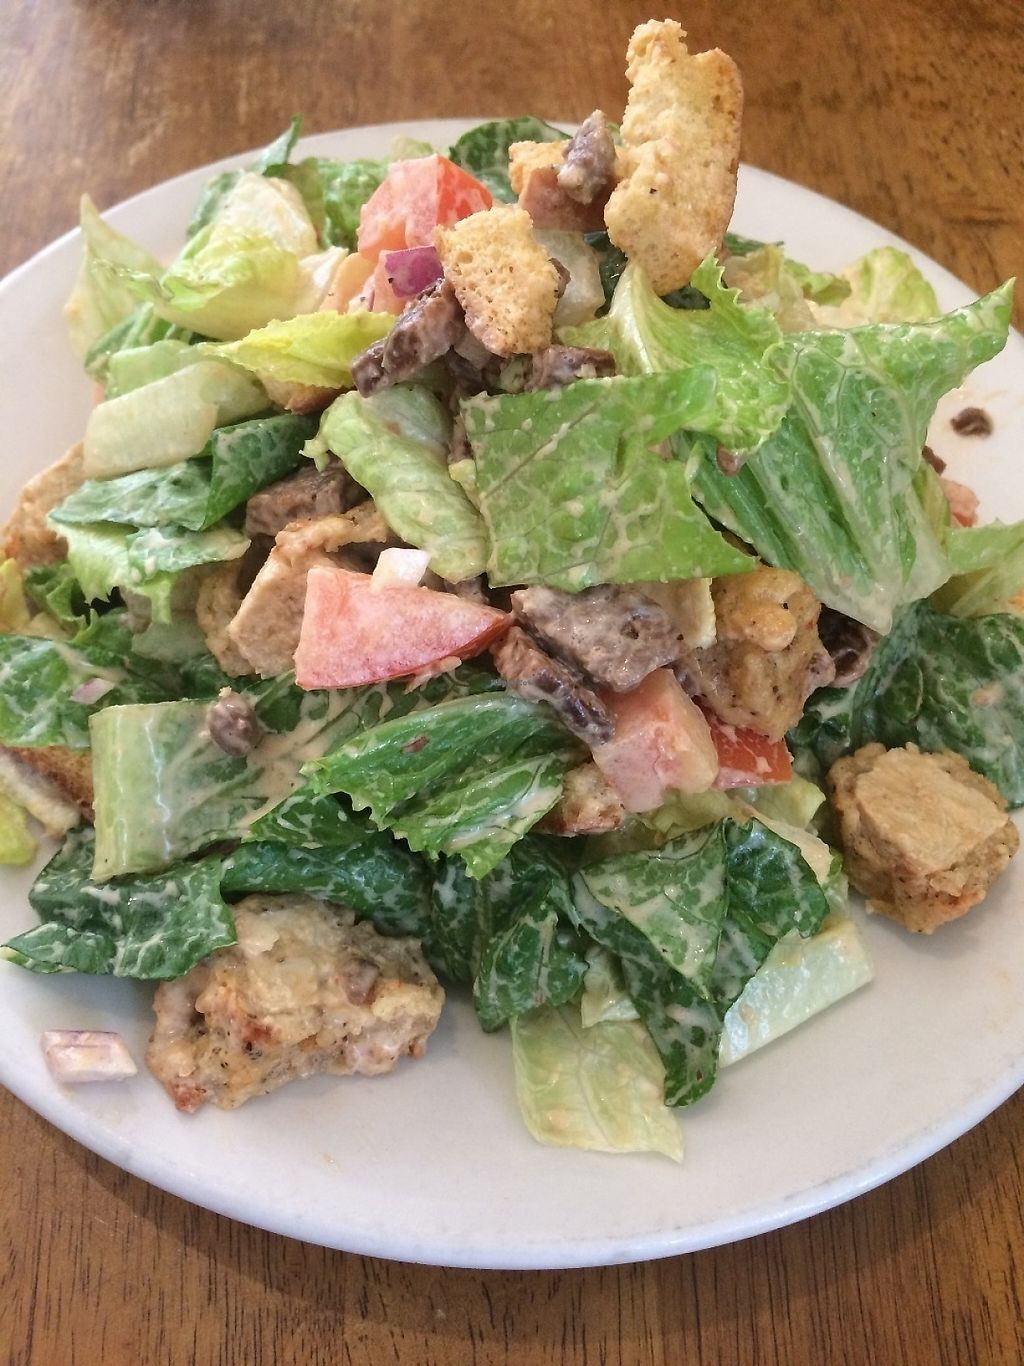 """Photo of Peacefood Cafe - Uptown  by <a href=""""/members/profile/MyGreenTongue"""">MyGreenTongue</a> <br/>caesar salad <br/> May 24, 2017  - <a href='/contact/abuse/image/17713/262174'>Report</a>"""